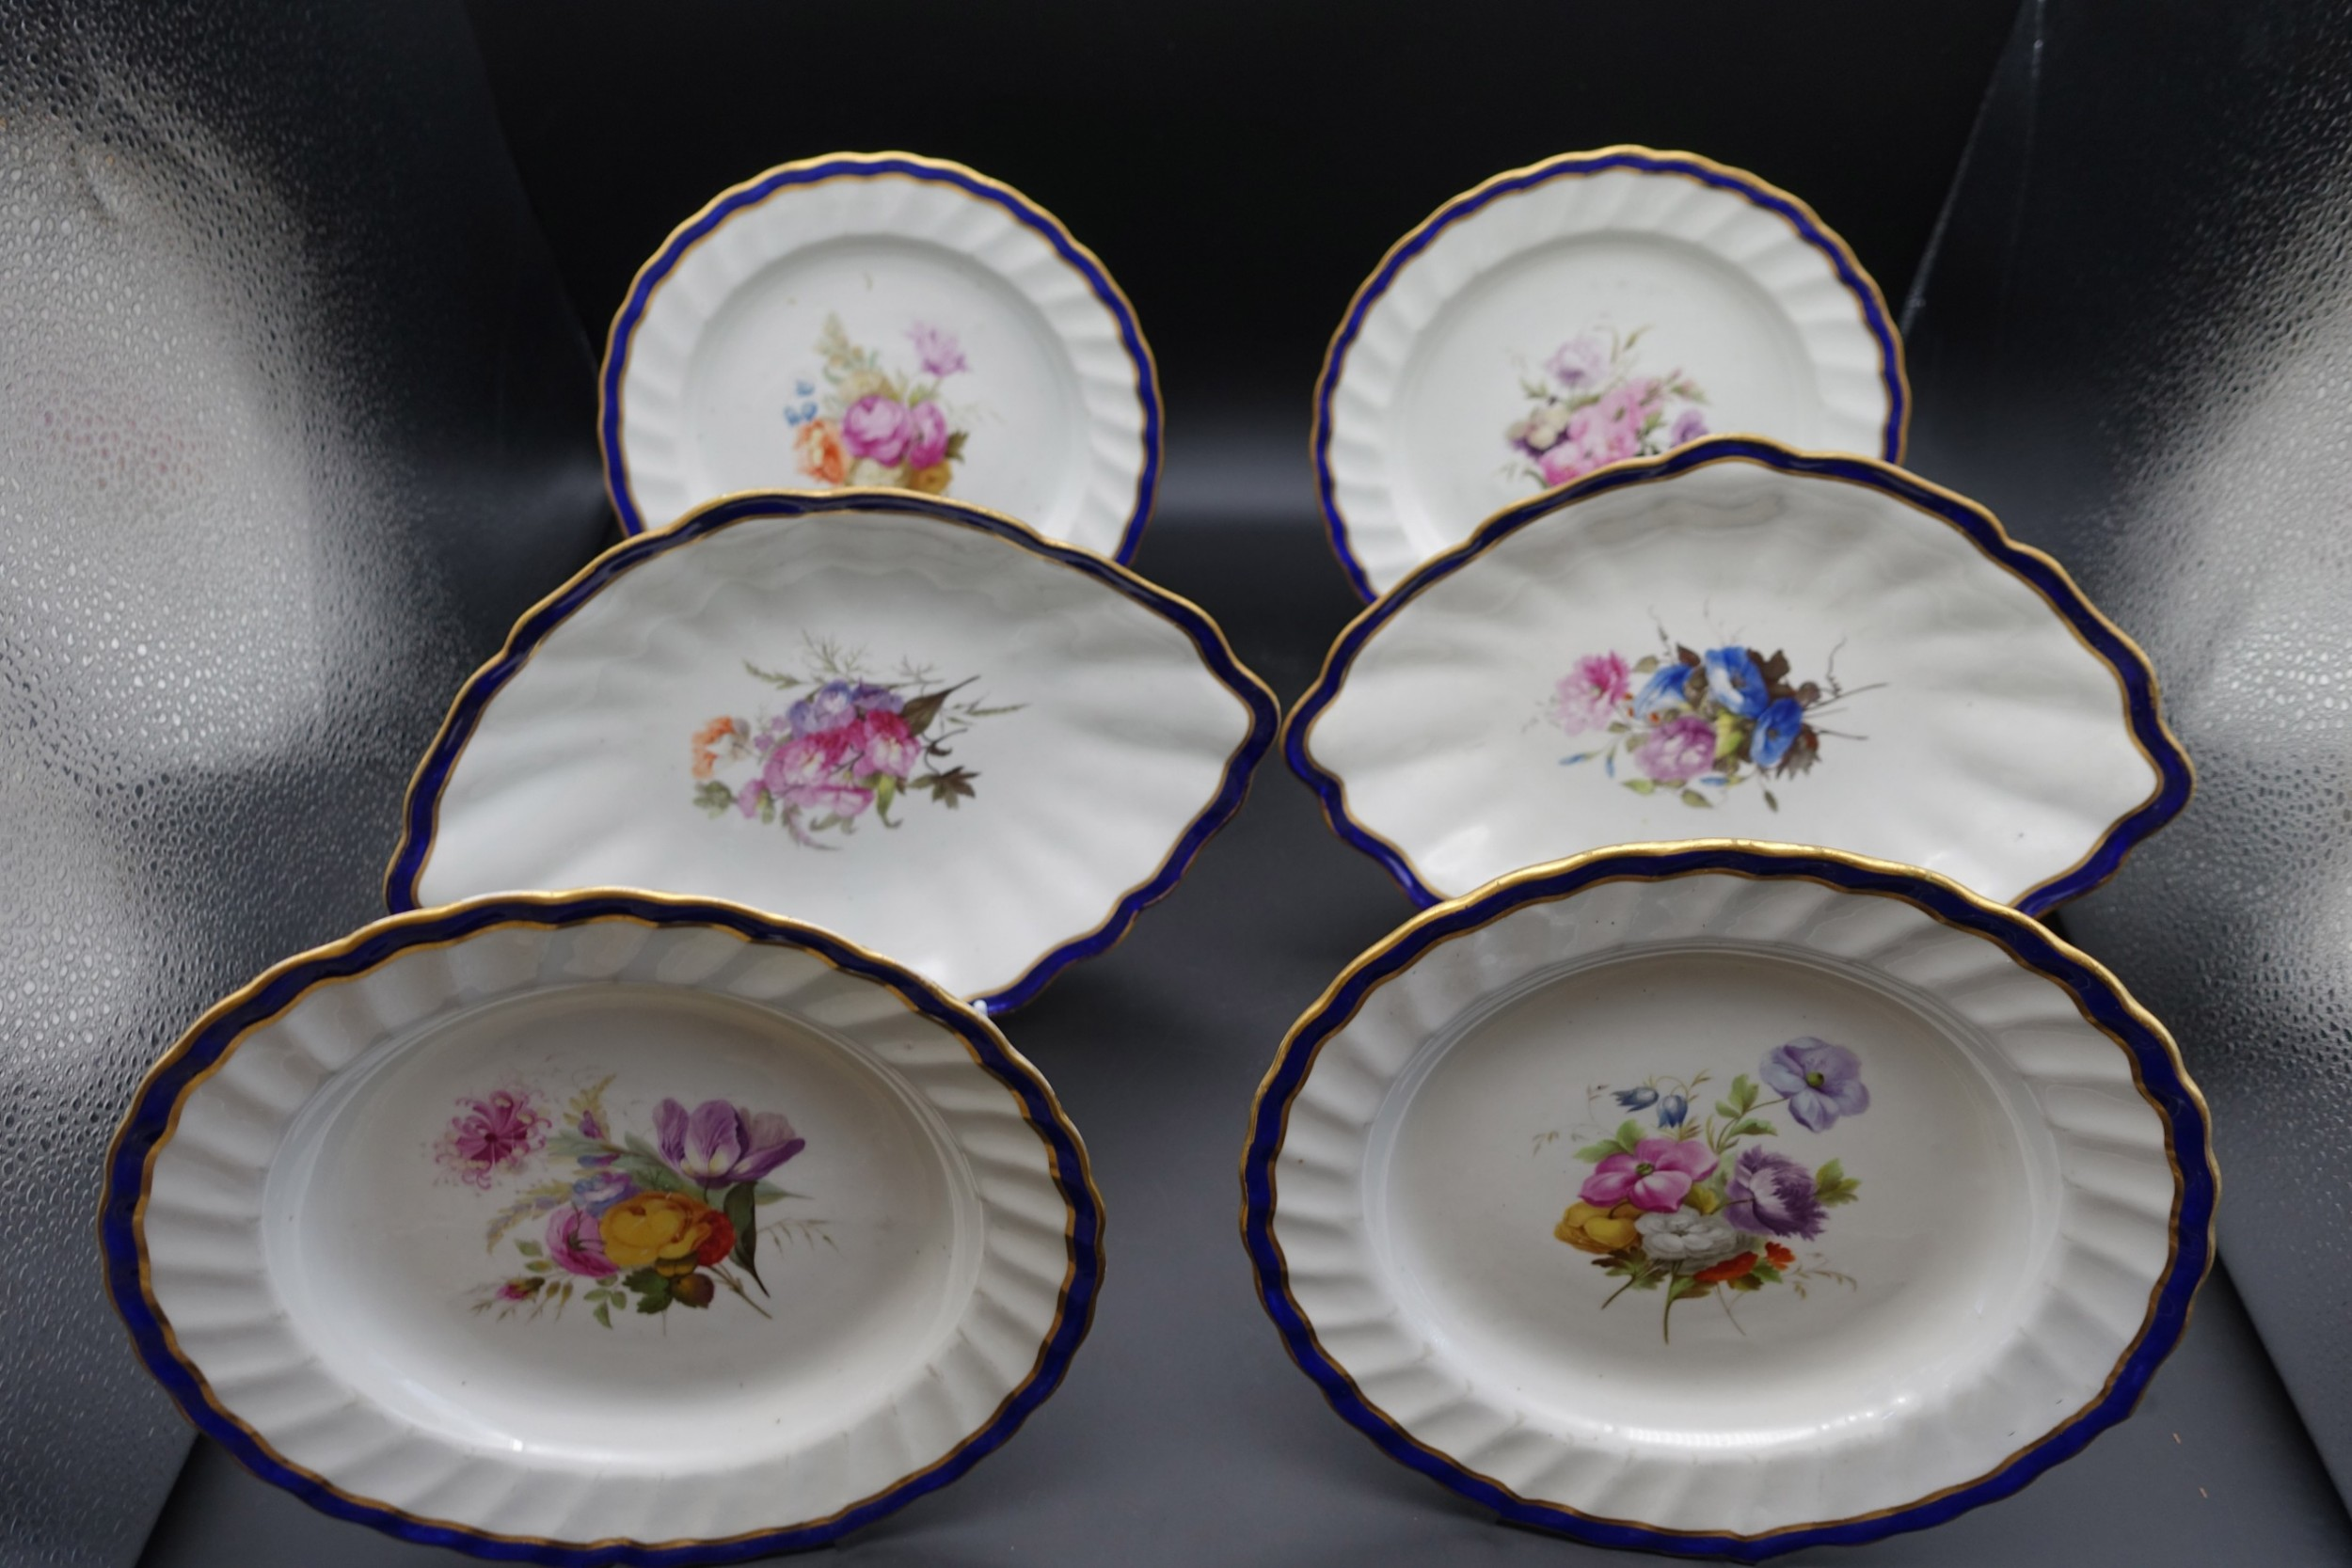 a fine set of 6 late 18th century derby plates painted by william billingsley